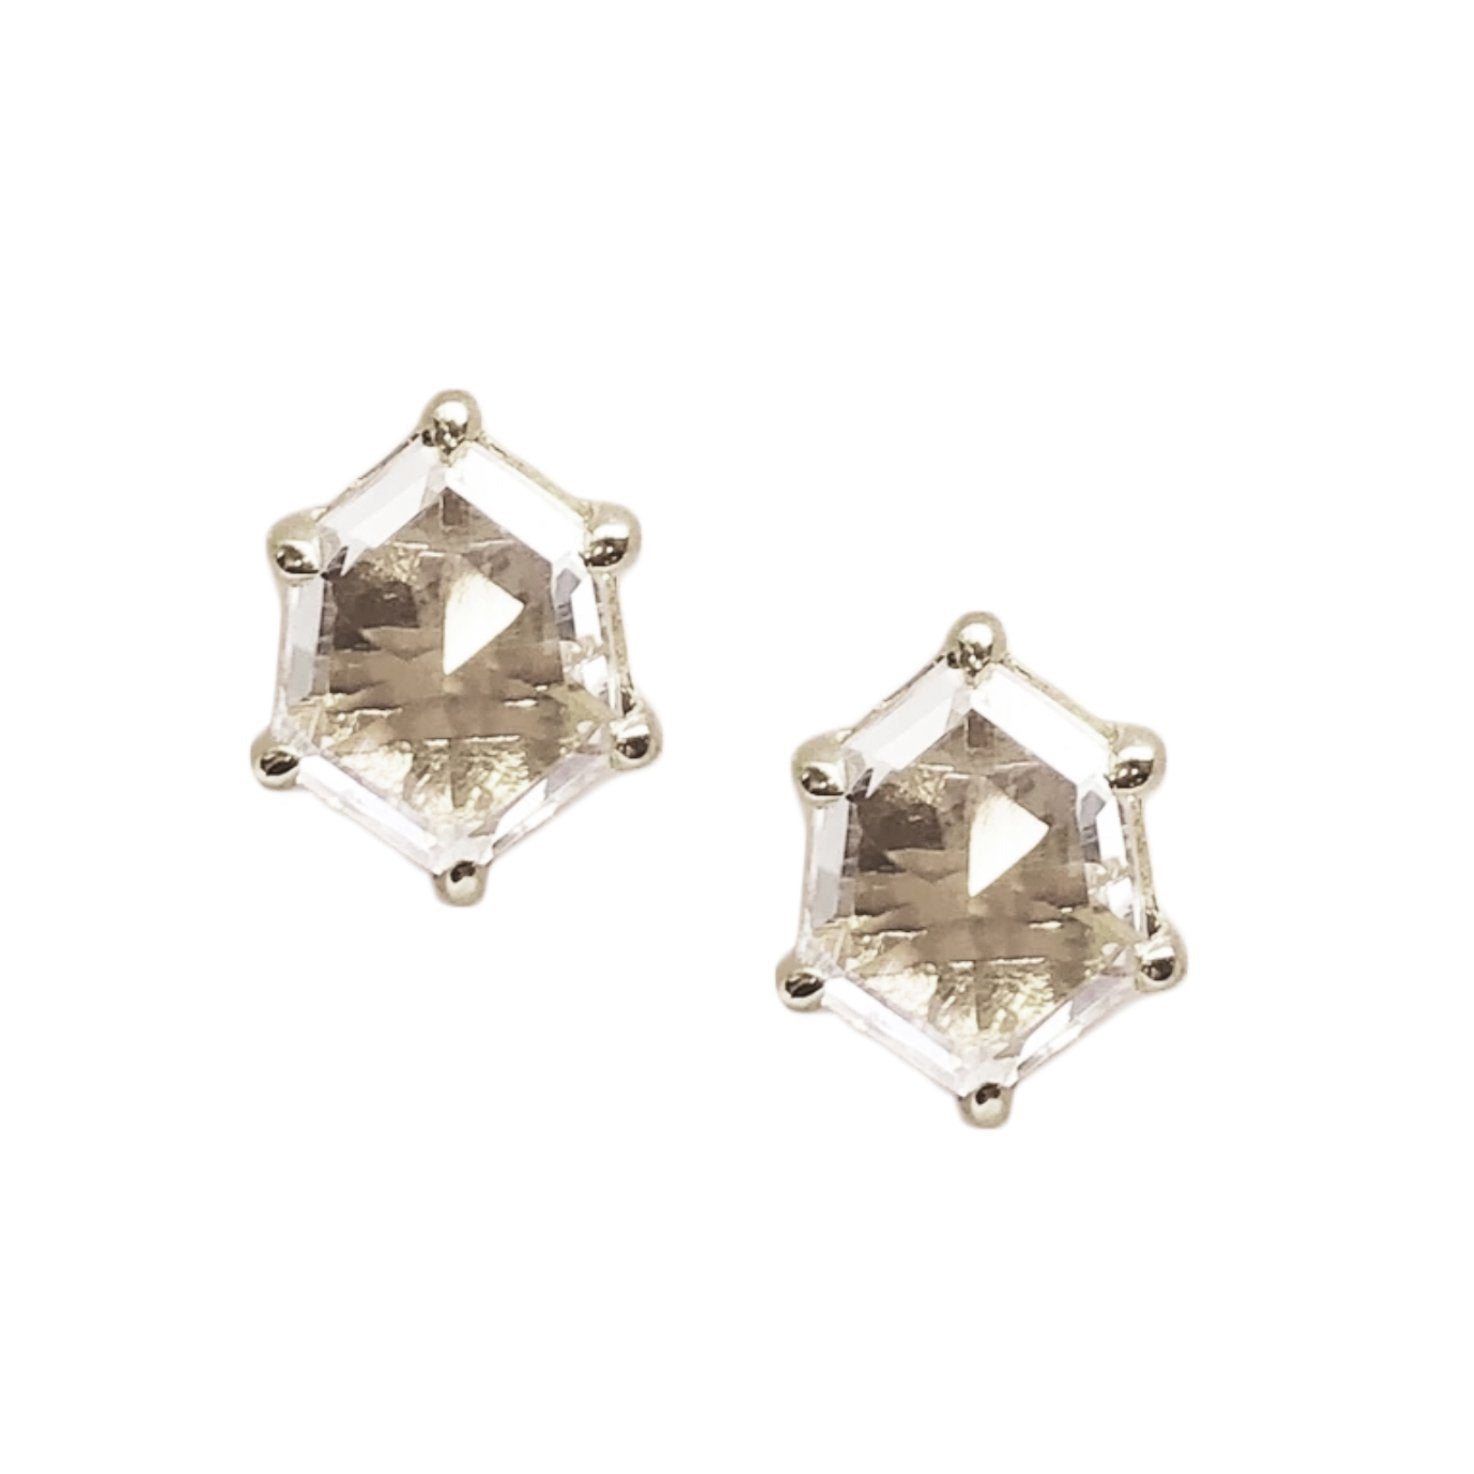 MINI HONOUR SHIELD STUD EARRINGS - WHITE TOPAZ & SILVER - SO PRETTY CARA COTTER